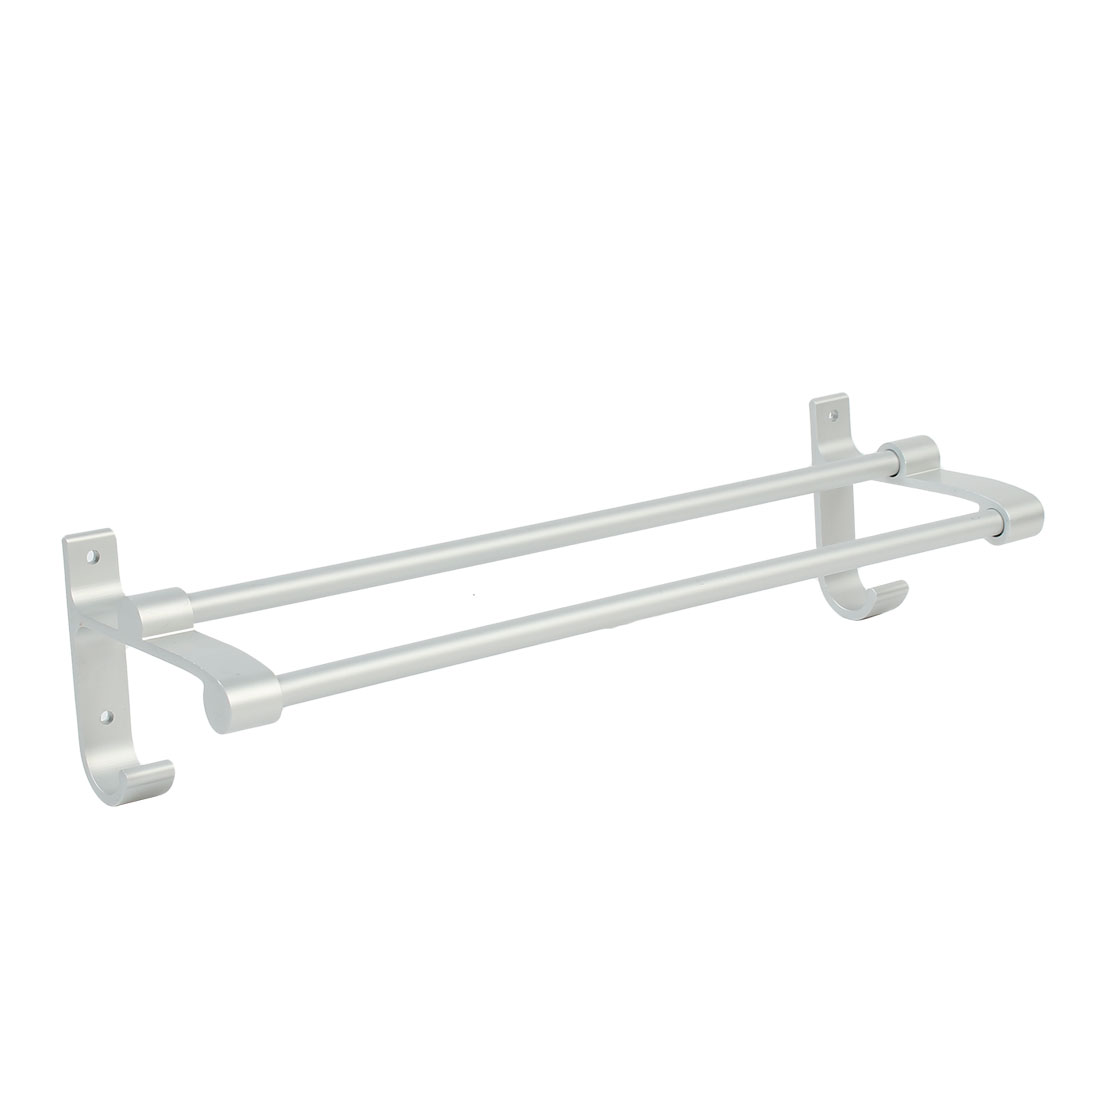 Hotel Home Bathroom Alumimum Wall Mount Double Bar Towel Rack Hanger 40cm Length